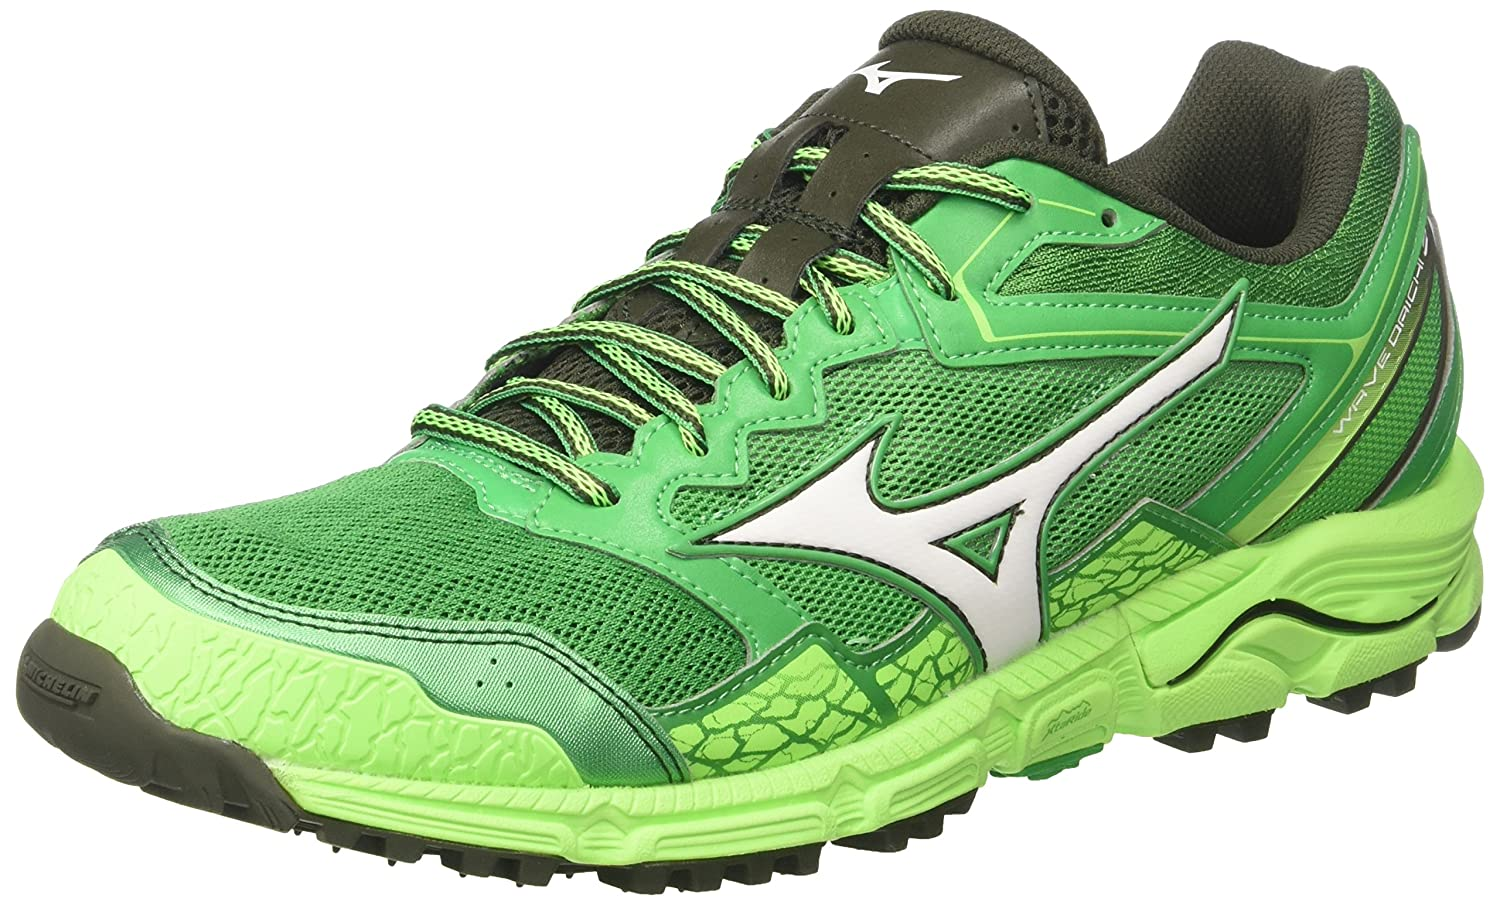 Mizuno Wave Daichi 3, Zapatillas de Running para Hombre 44 EU|Multicolor (Brightgreen/White/Greengecko 01)